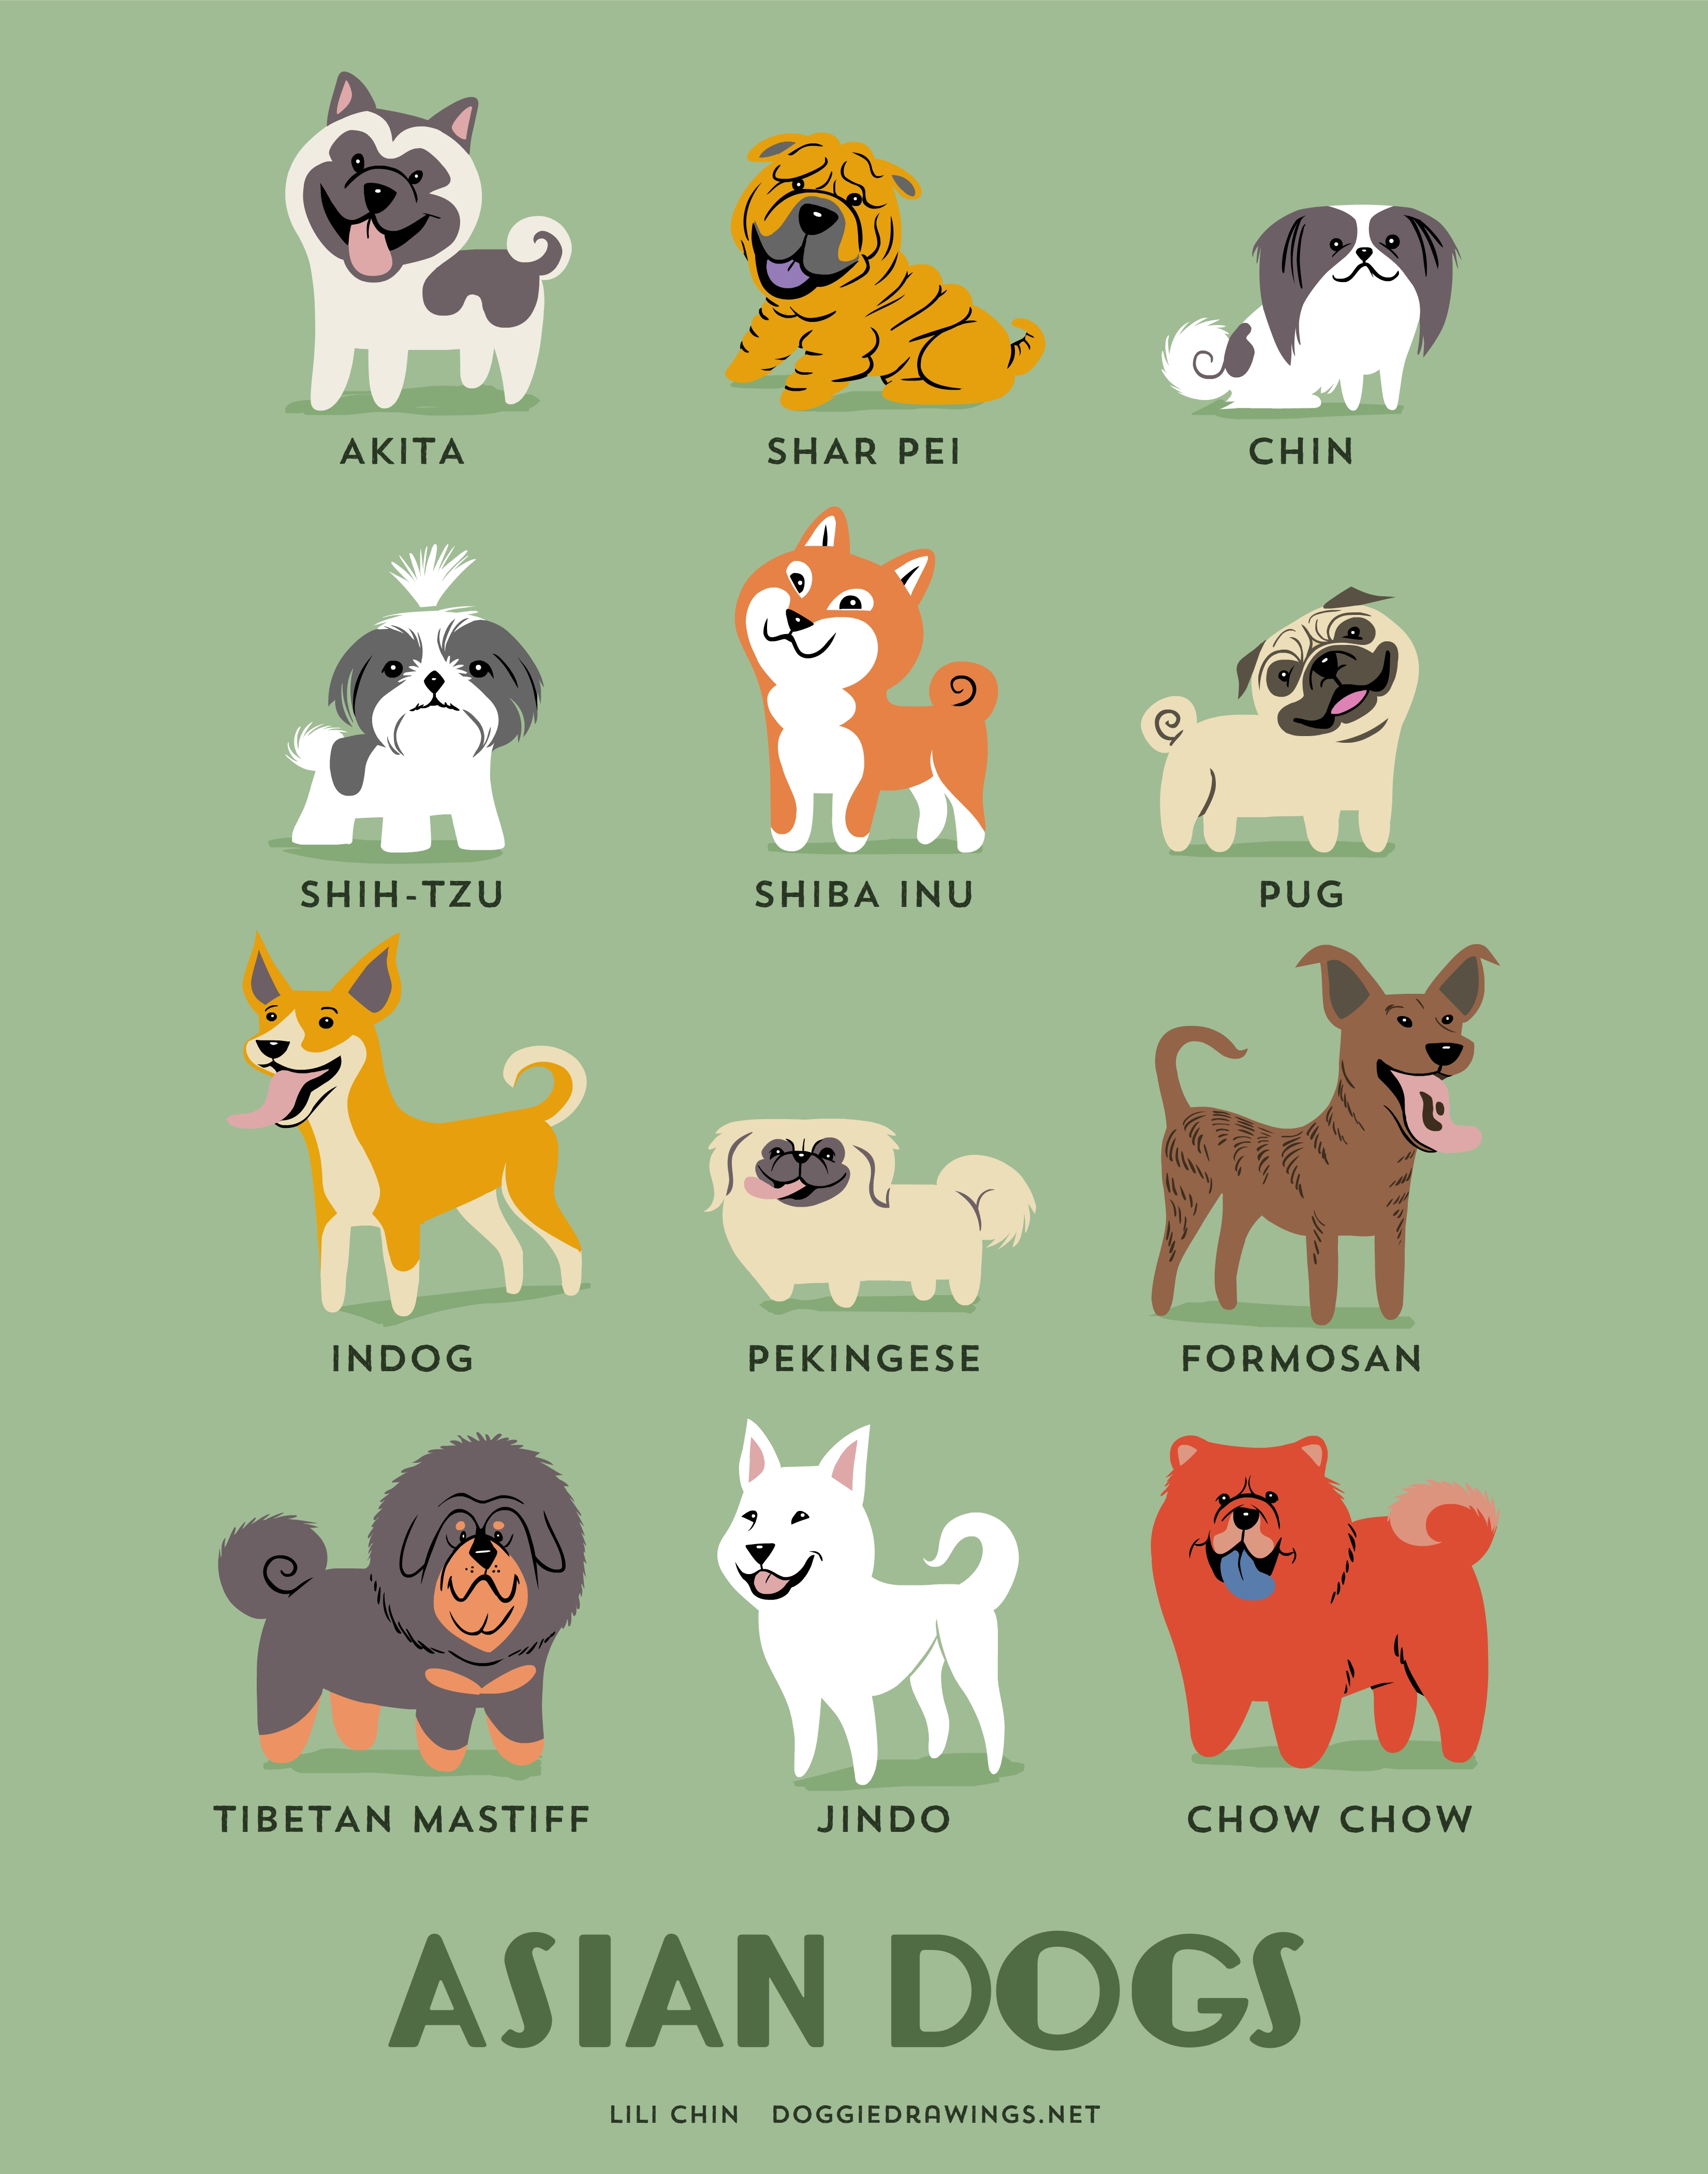 ASIAN DOGS